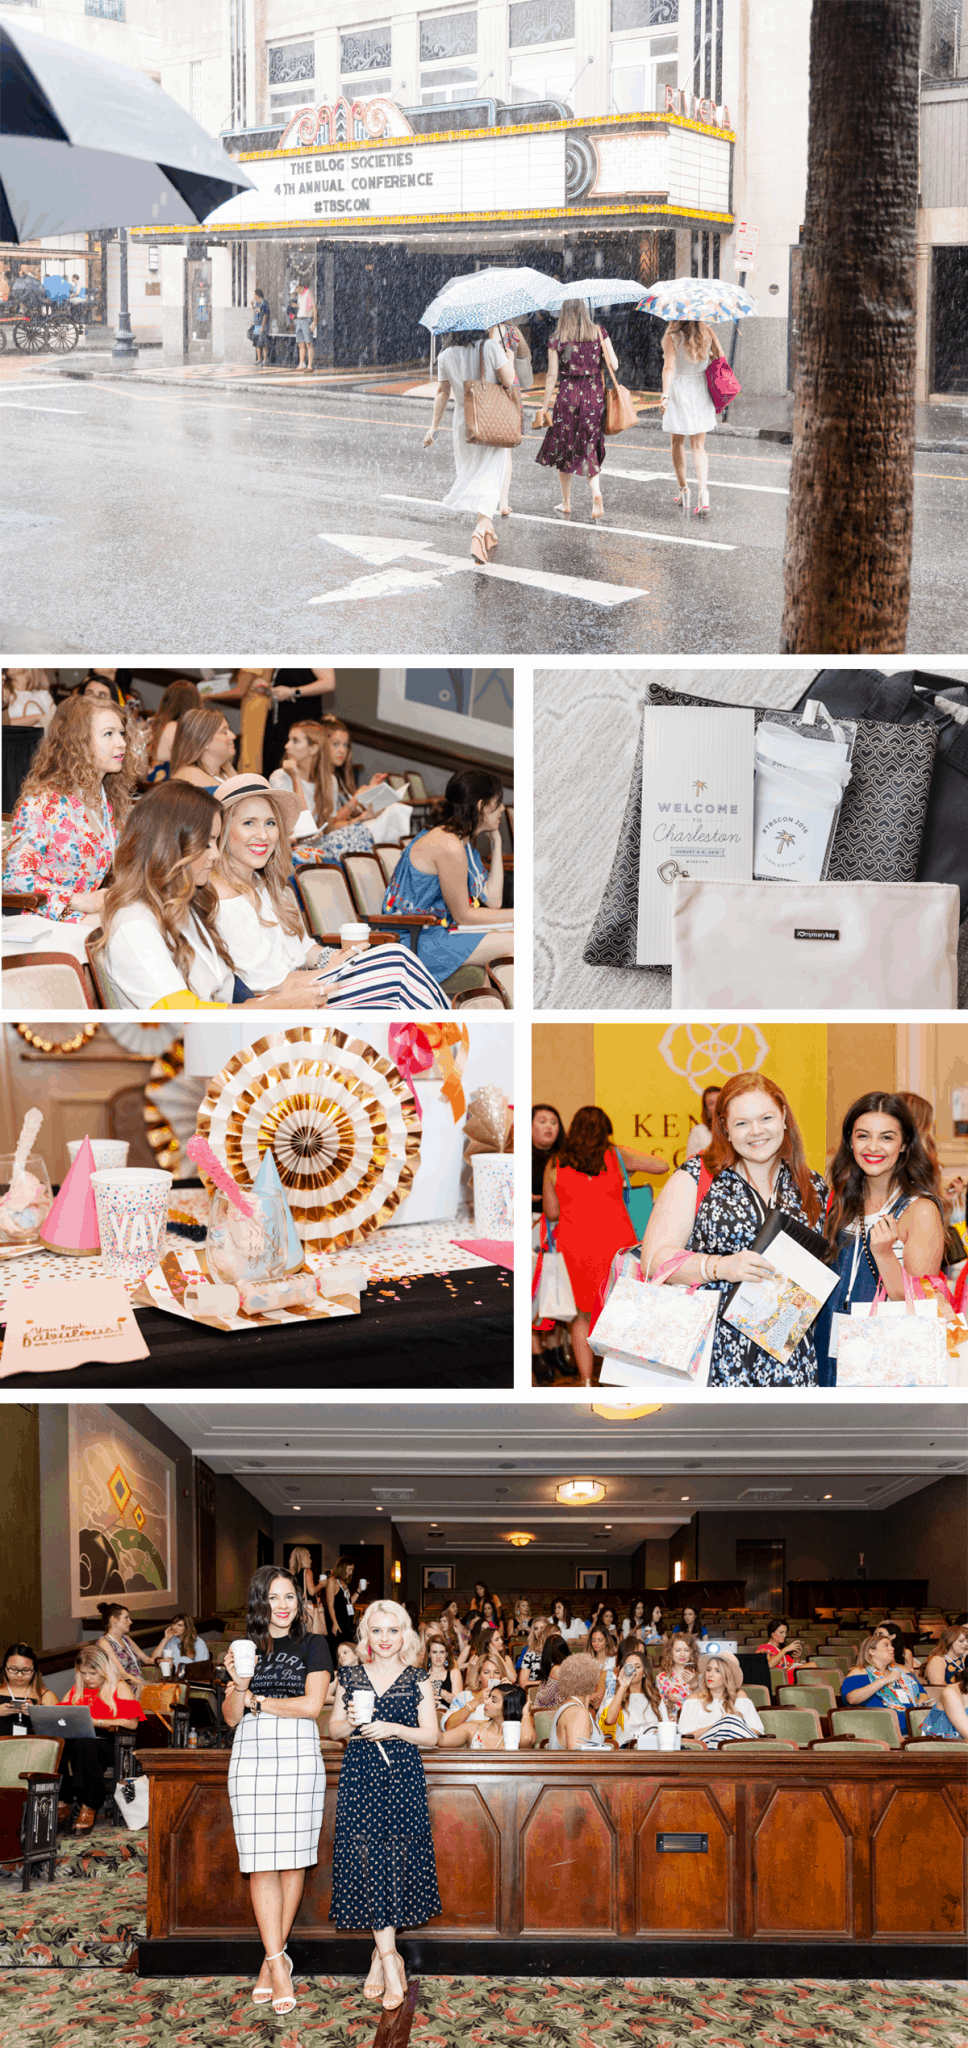 day two of the blog societies conference best blogging conference to attend - My Style Vita @mystylevita